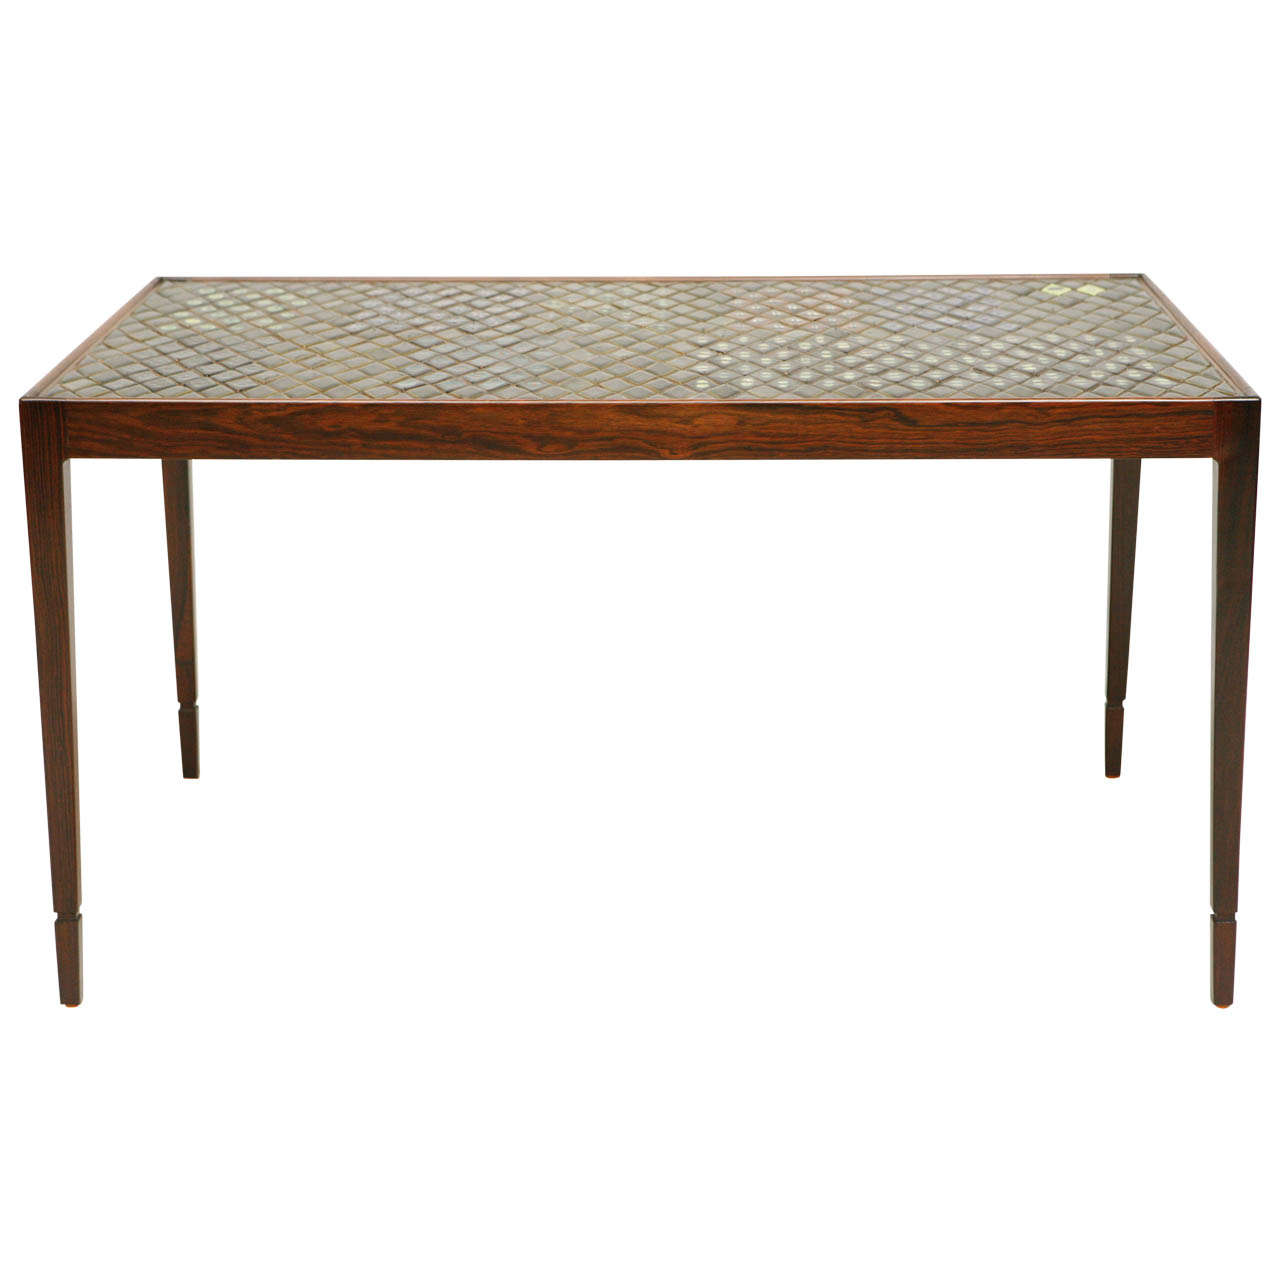 Unusual Bjorn Wiinblad Coffee Table For Sale At 1stdibs